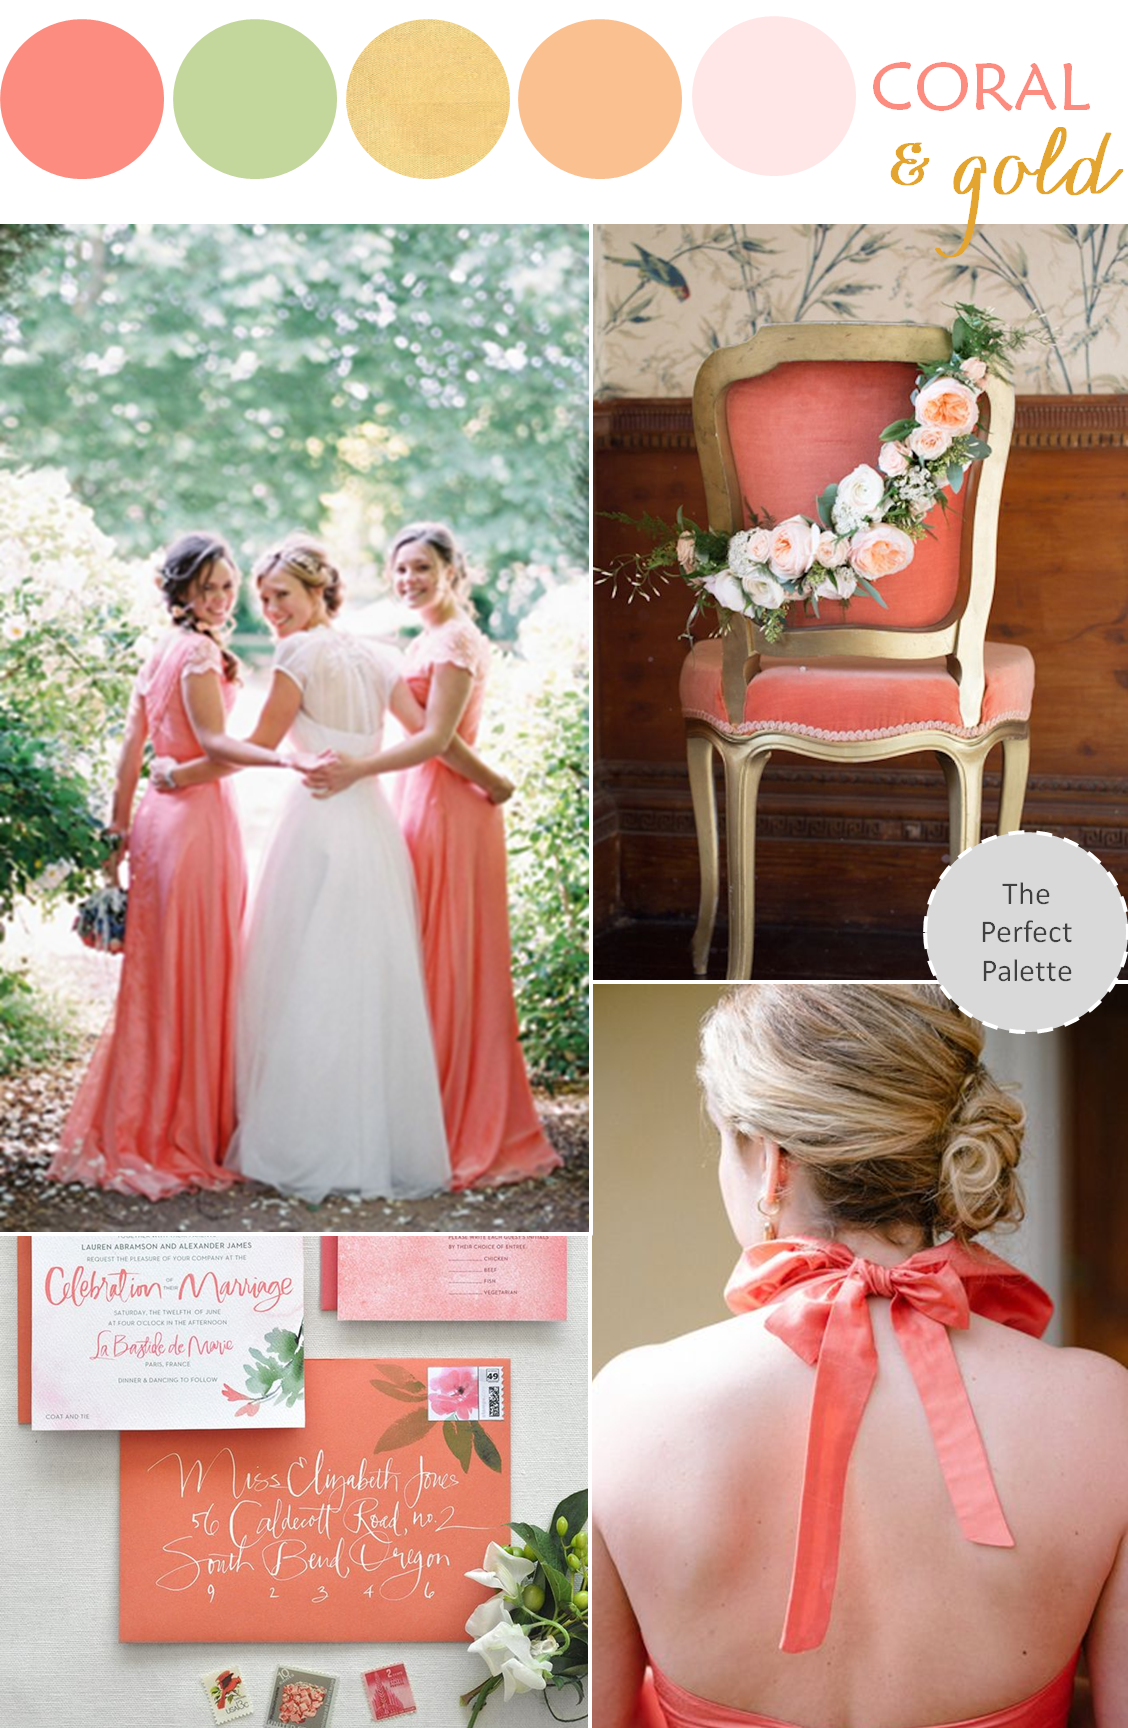 Design Coral Color Scheme wedding color palette coral green gold weddings and gold